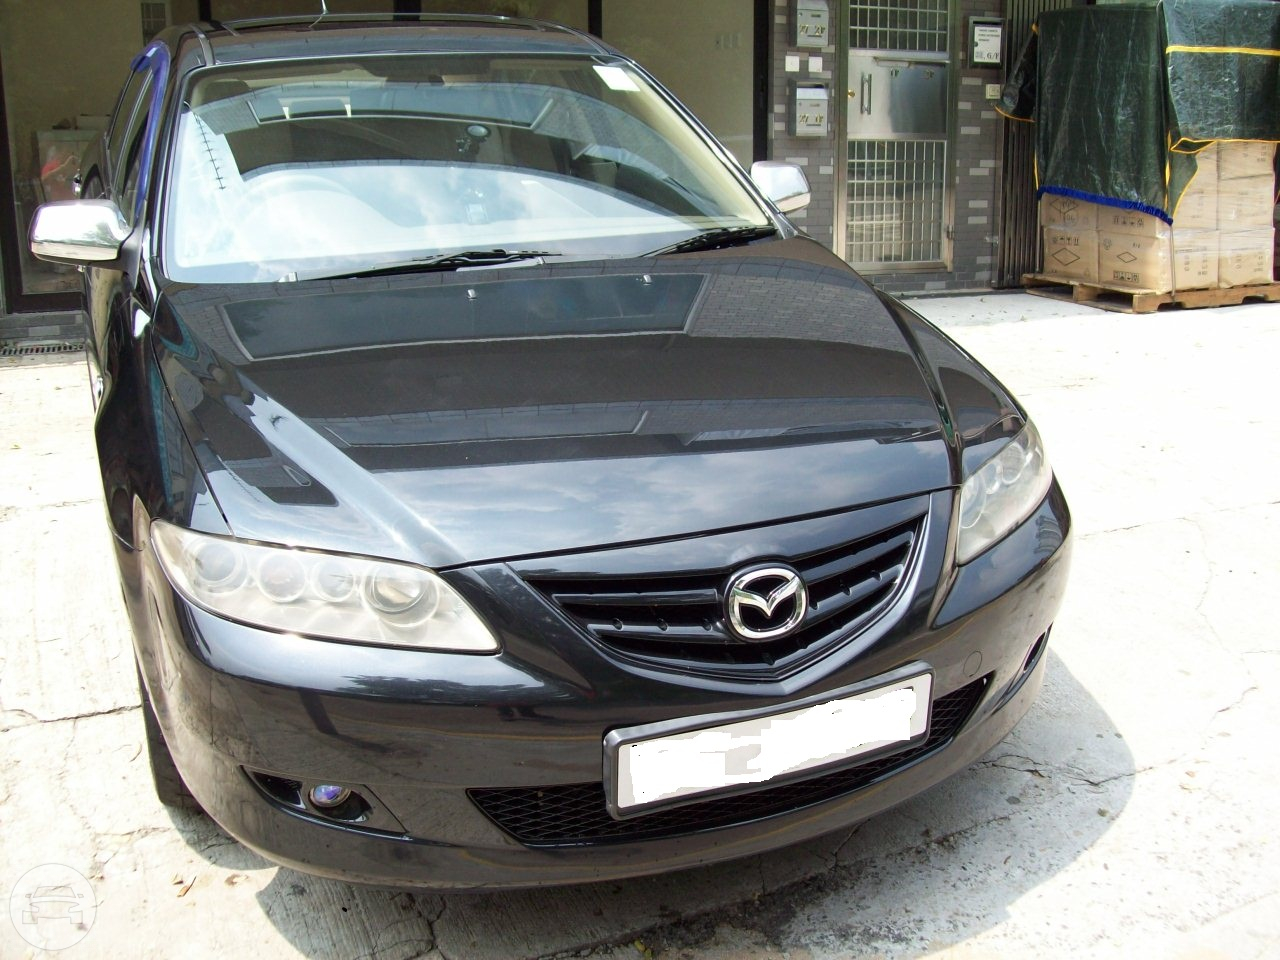 MAZDA 6 Sedan / Kowloon, Hong Kong   / Hourly HKD 0.00